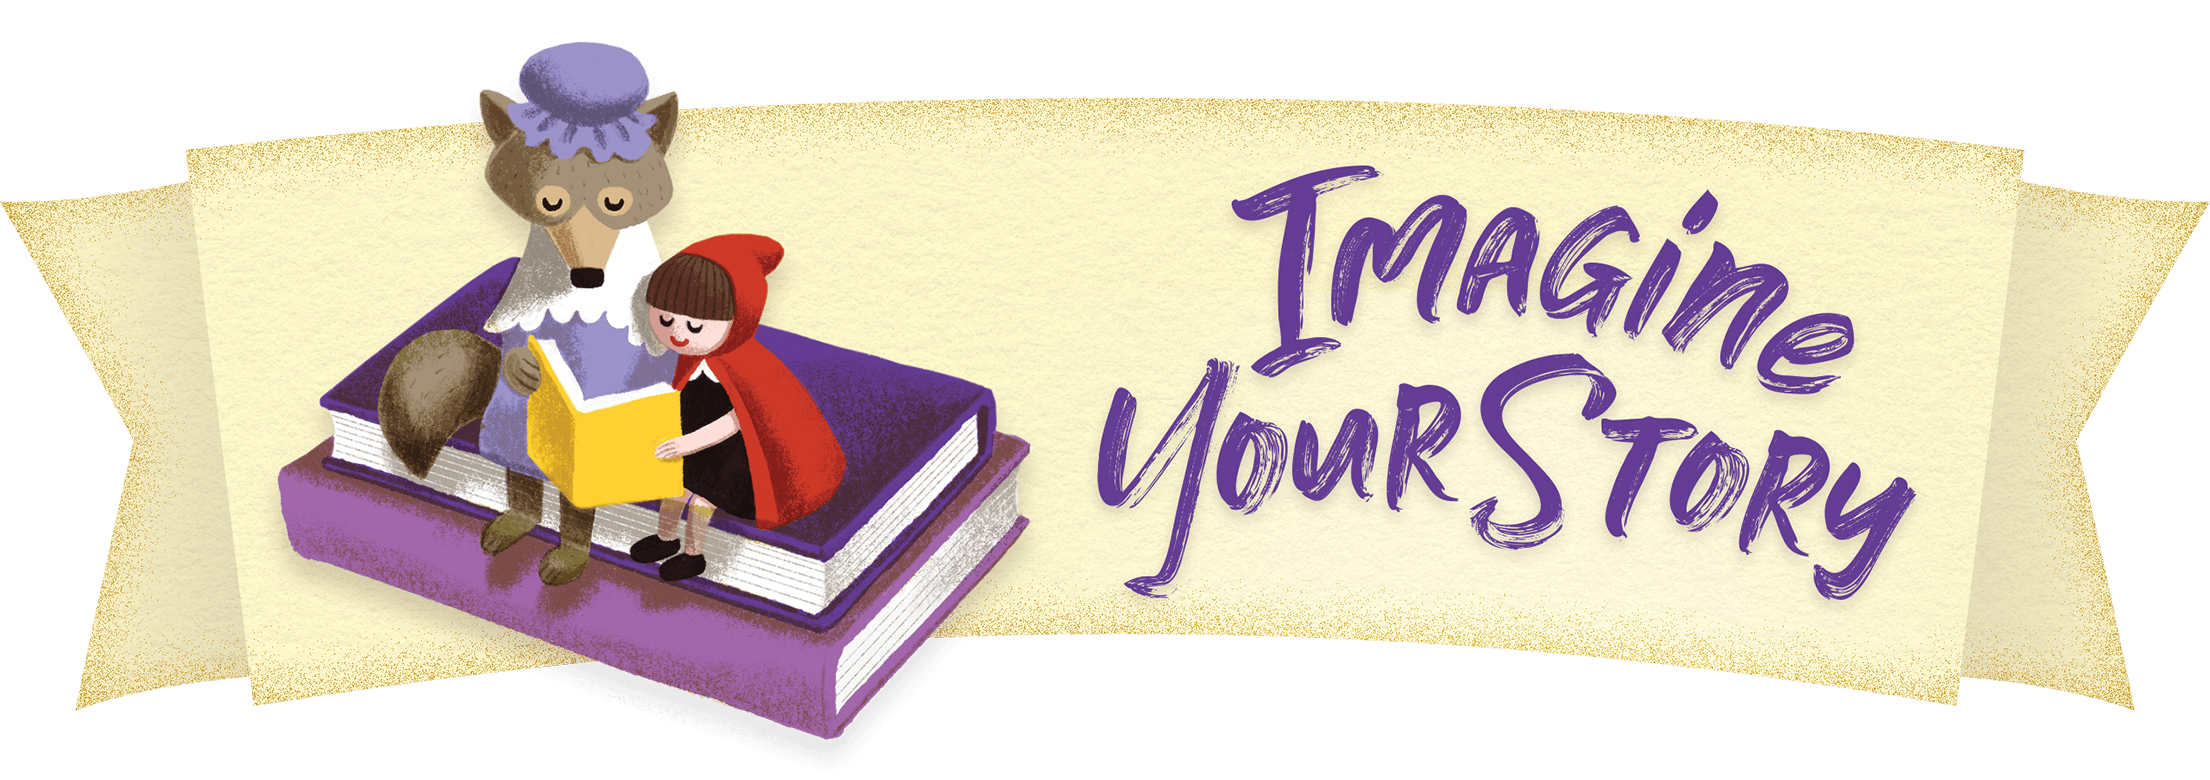 Teen Summer Reading Program Theme is imagine your story.